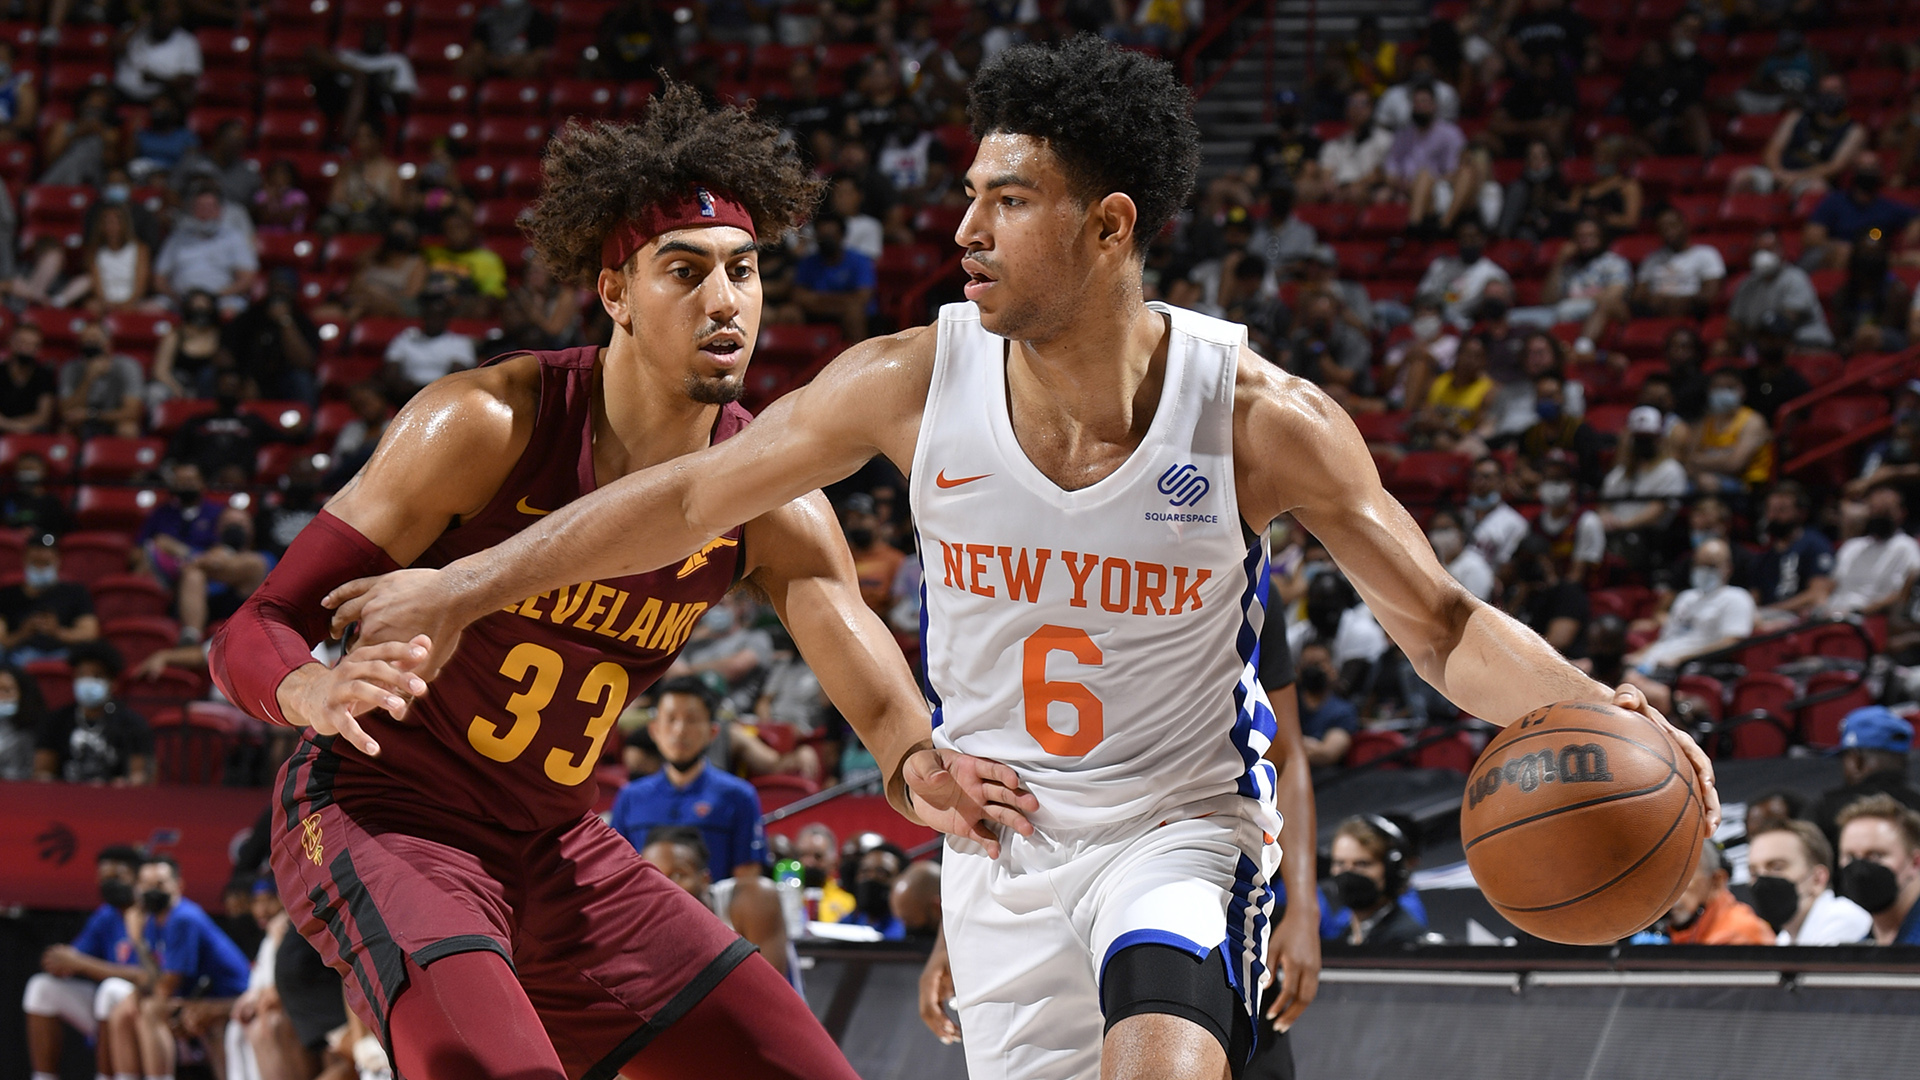 Las Vegas Summer League: Quentin Grimes shines in win over Cavs